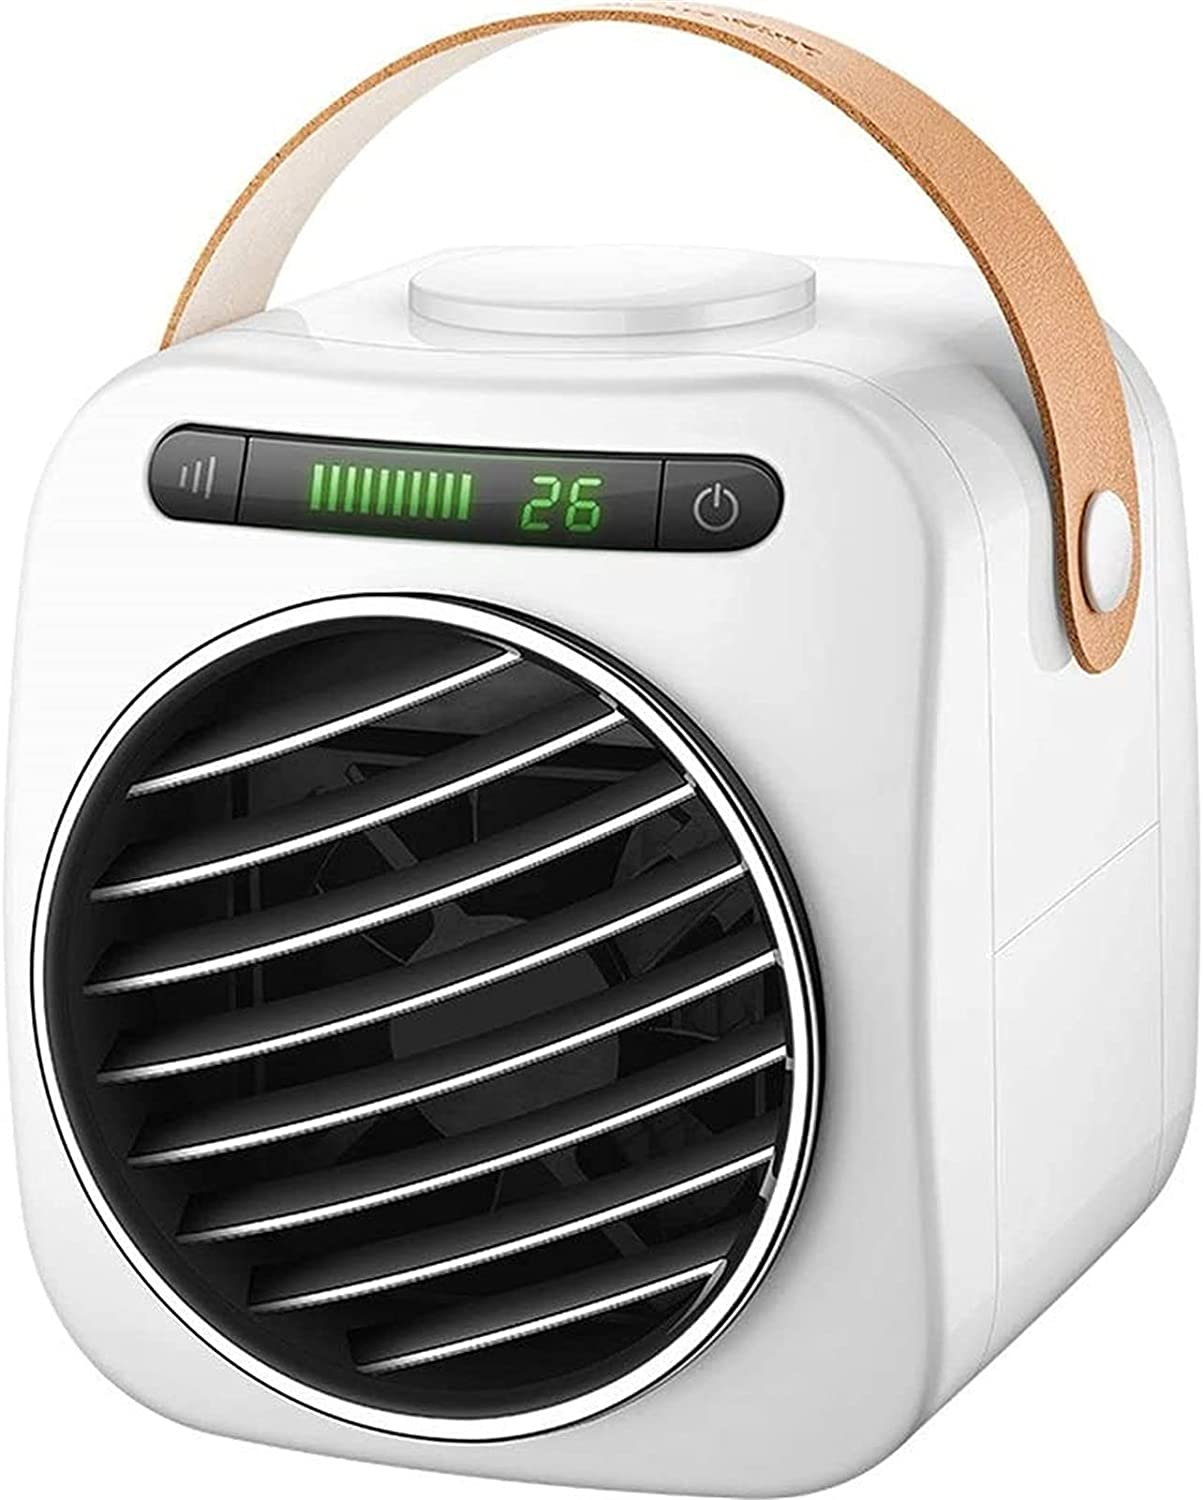 Portable Max 82% OFF air conditioner cooler Directly managed store Mobile Air Condi